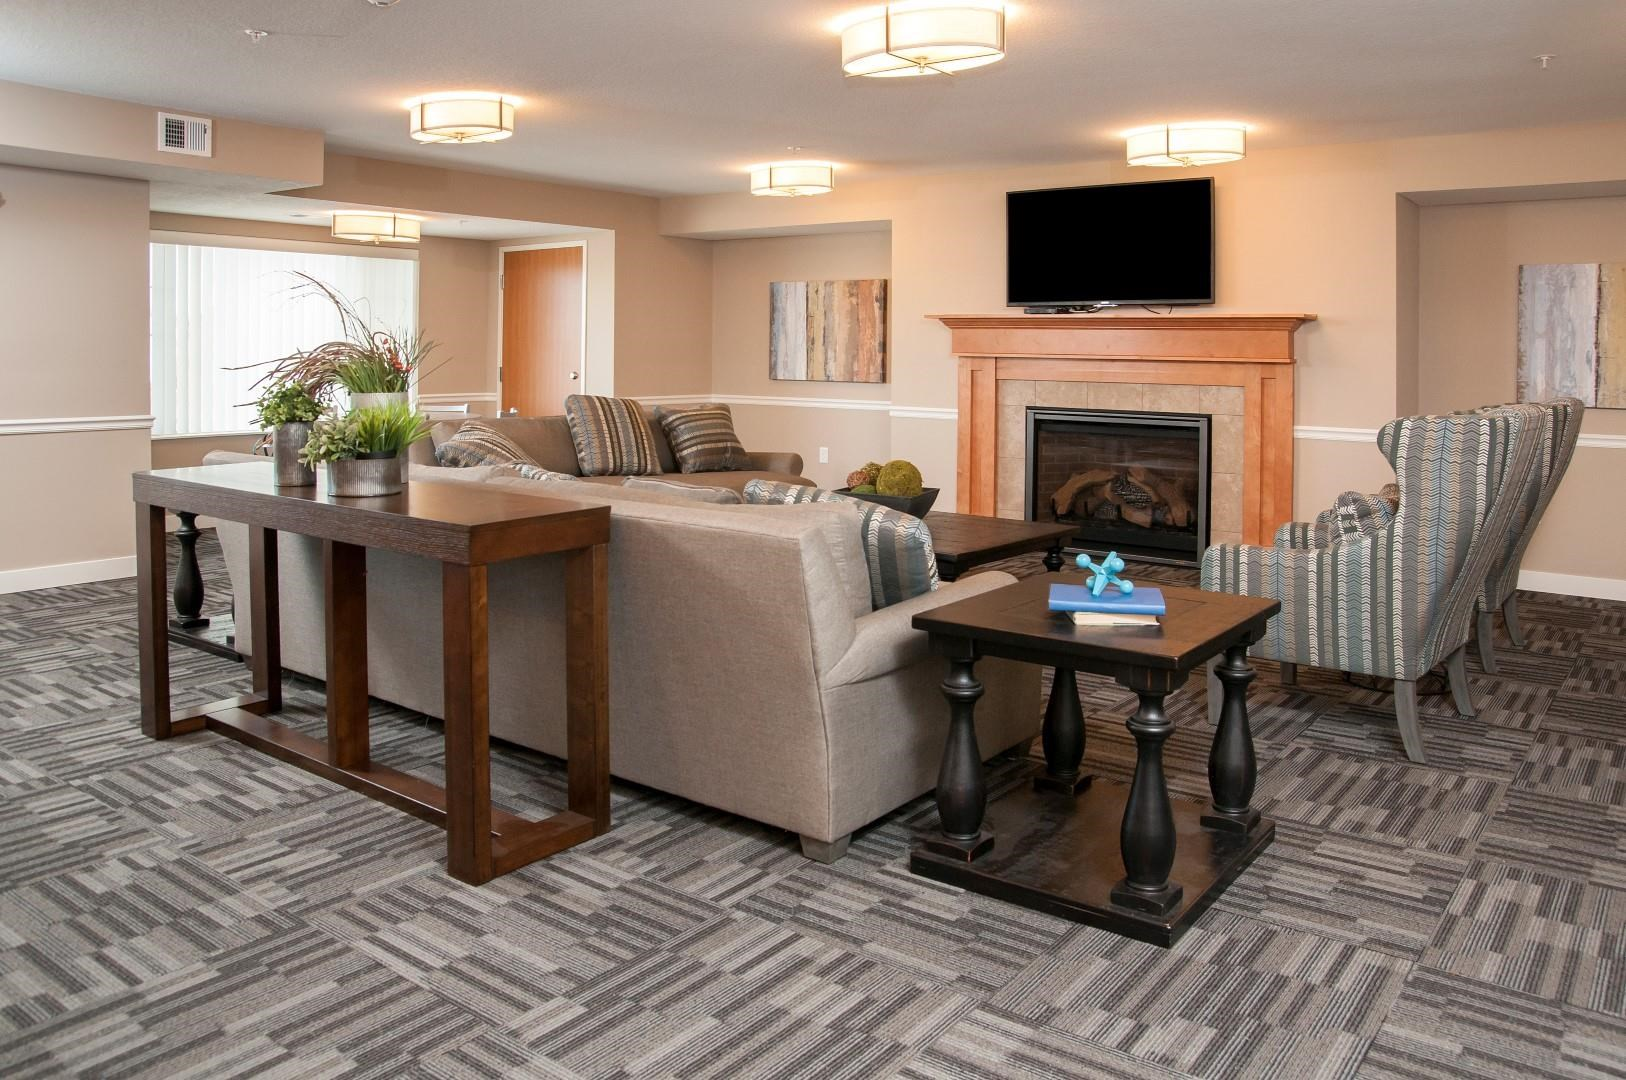 Community Room with Flat screen Television, Comfortable seeing area and Fireplace at Carver Crossing